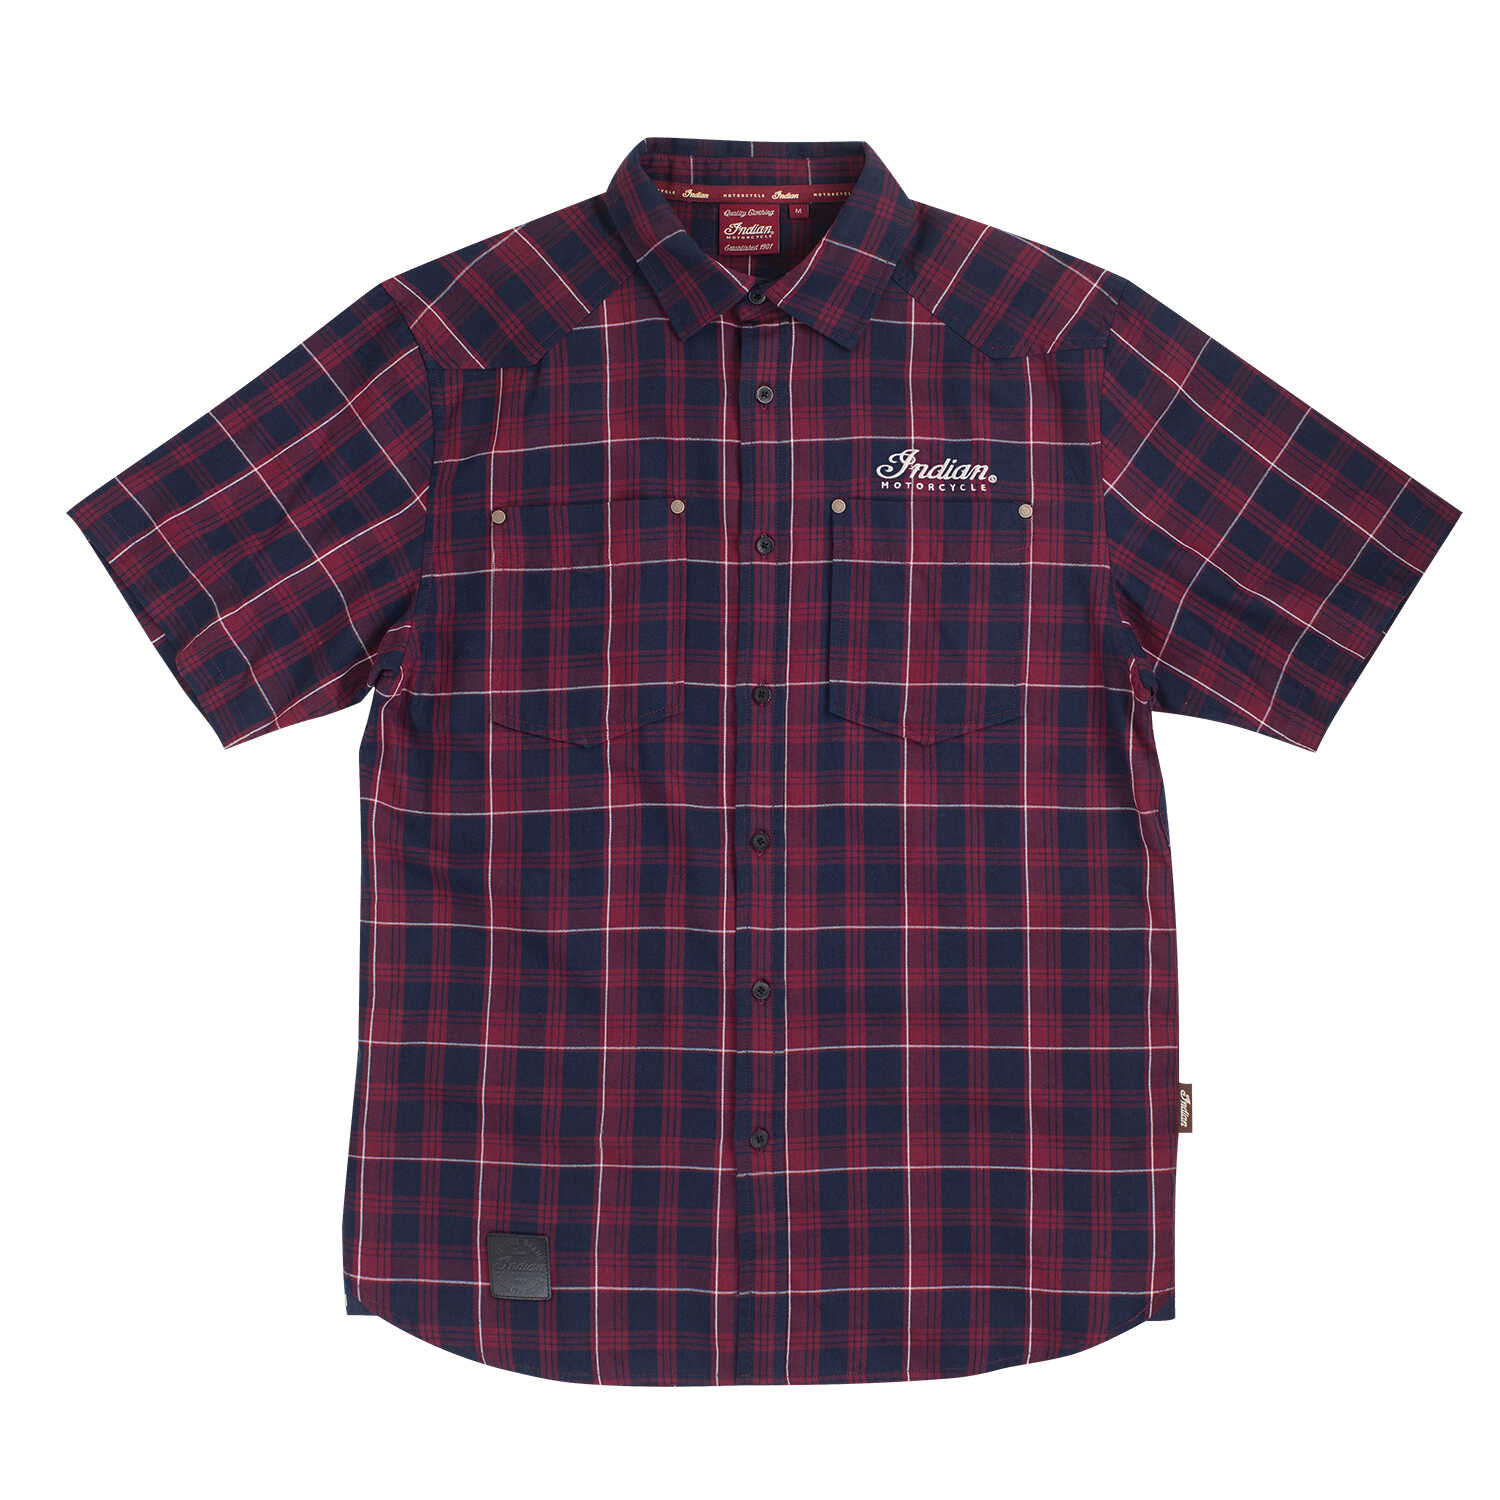 Men's Short-Sleeve Plaid Shirt with Embroidered Logo, Red/Navy